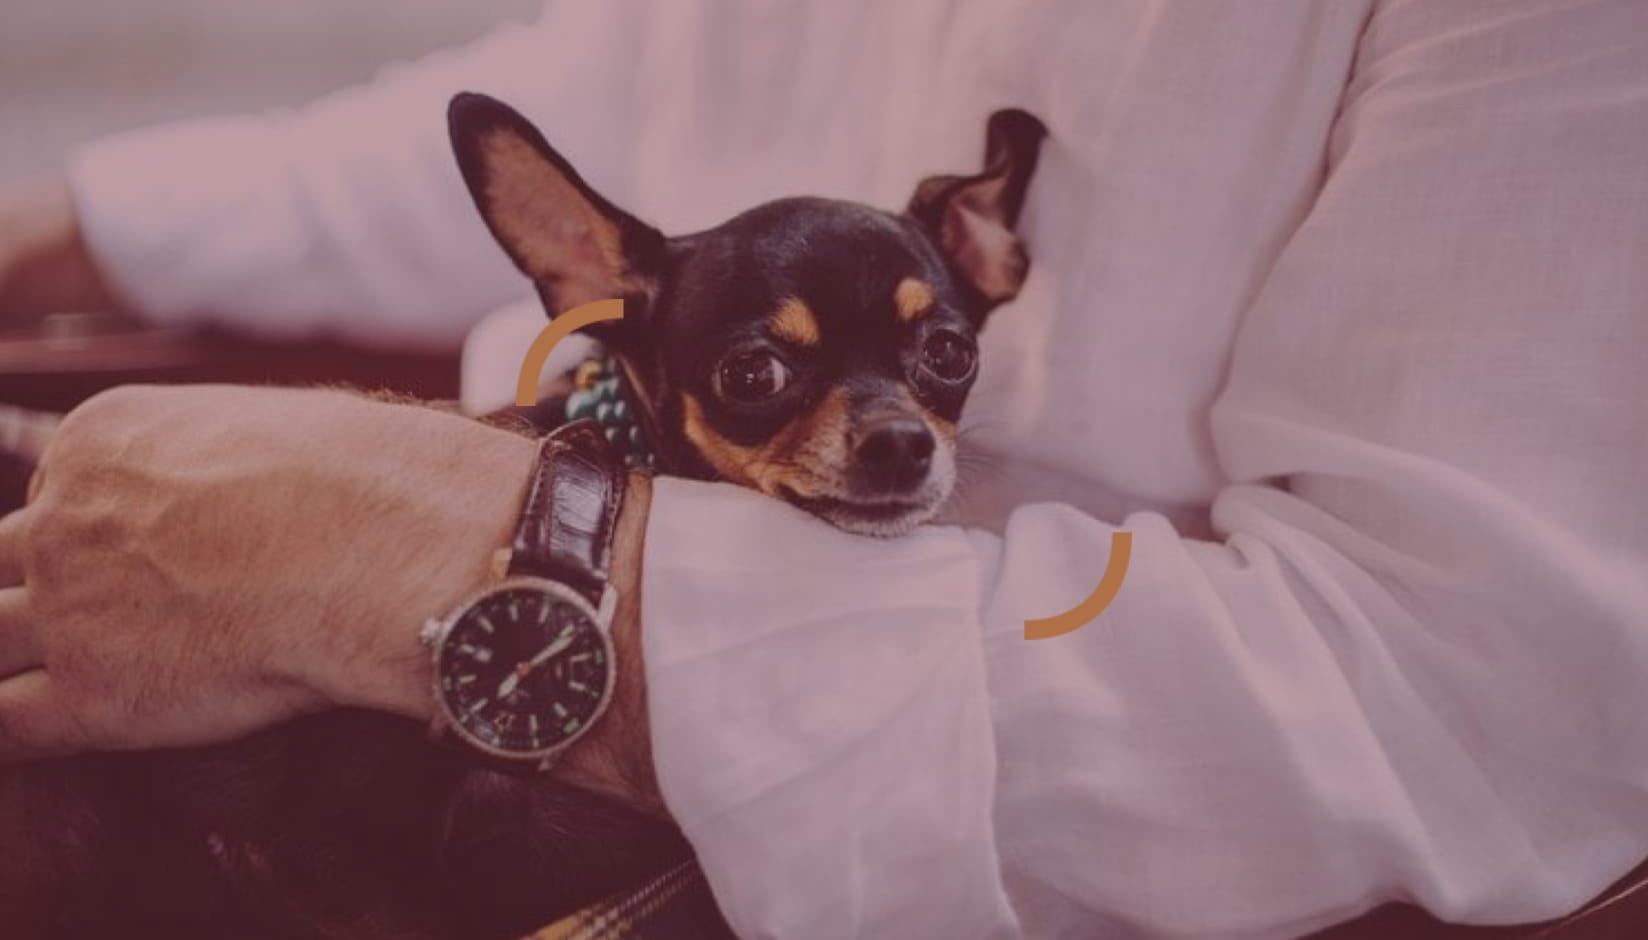 Pet-friendly Coworking Spaces (Pros, Cons & Concerns)